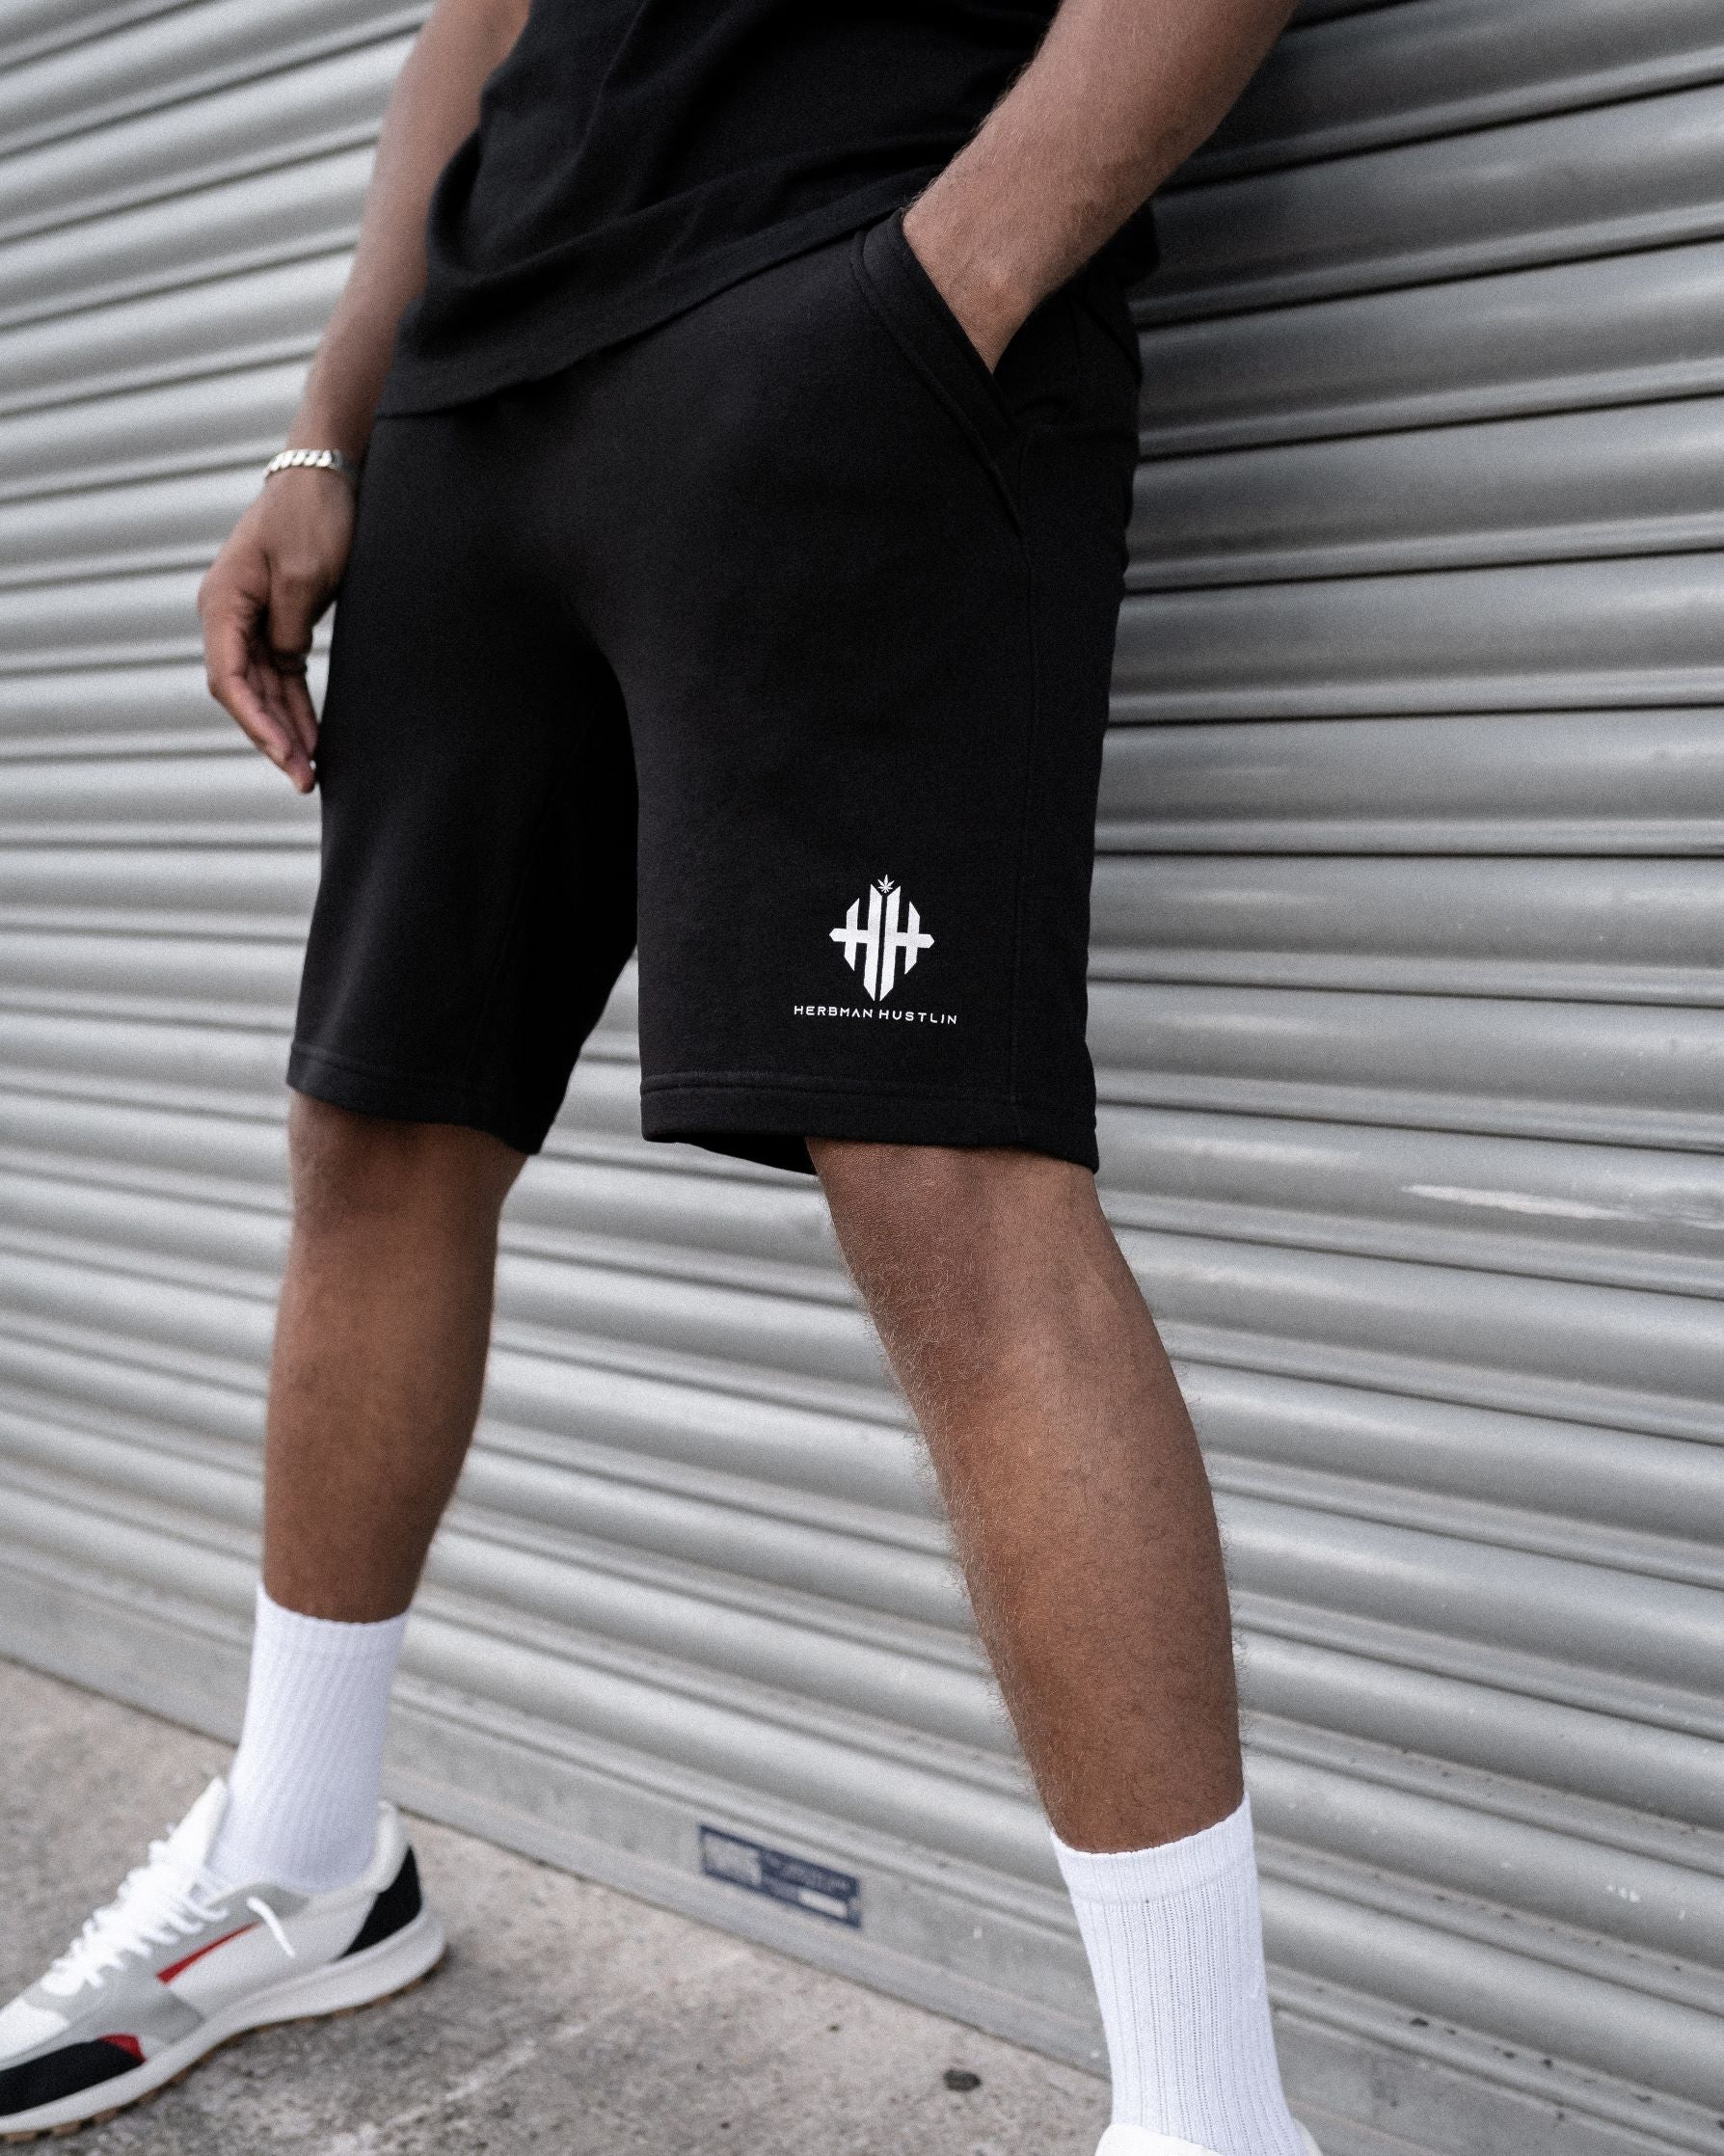 Herbman Hustlin Monogram Shorts - Black/White